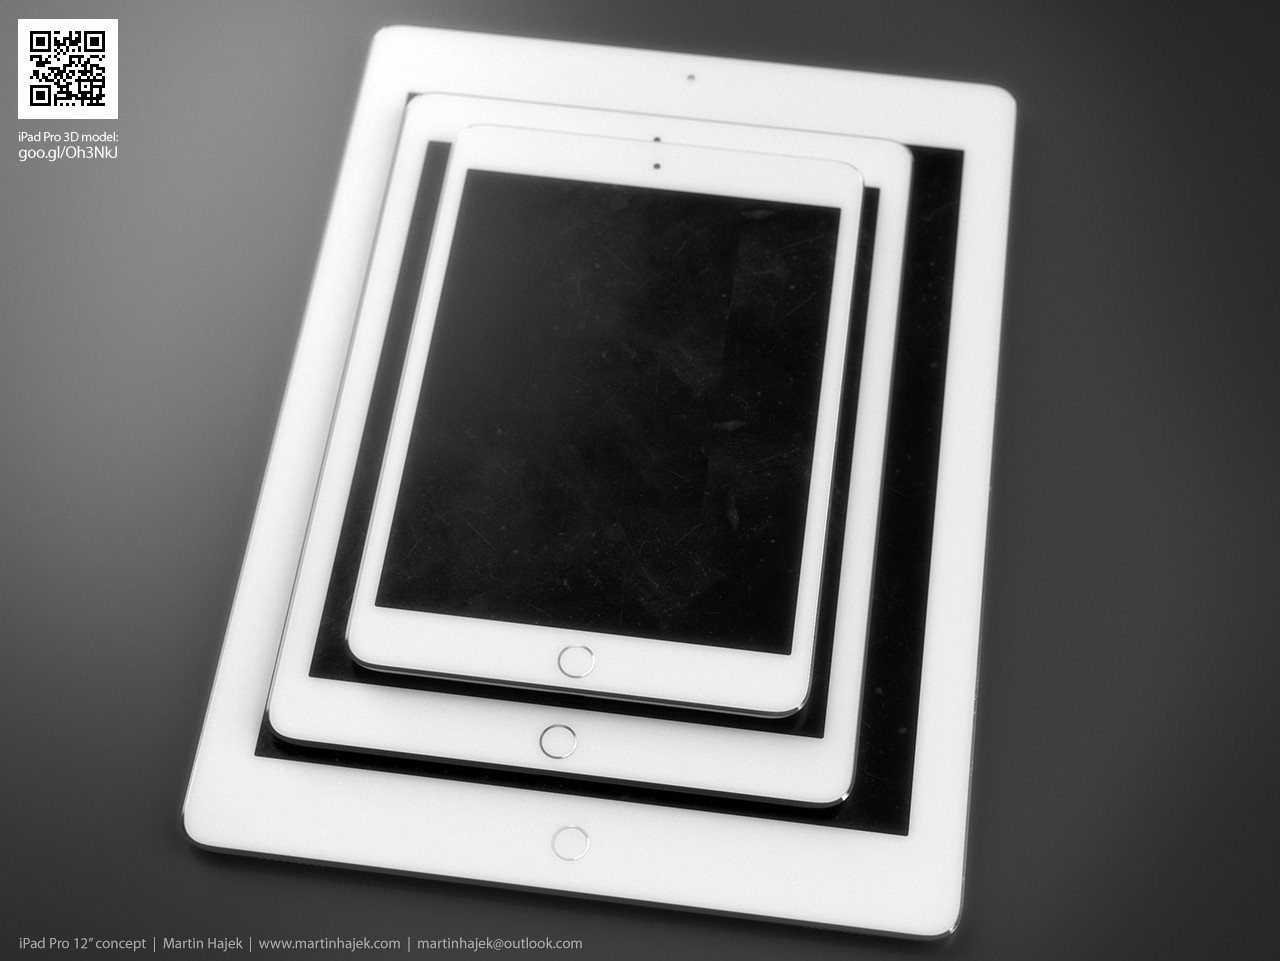 Apples 129 inch ipad pro might come with usb 30 port fast ipad pro compared to current ipad models concept ipad models stacked against one another jeuxipadfo Images